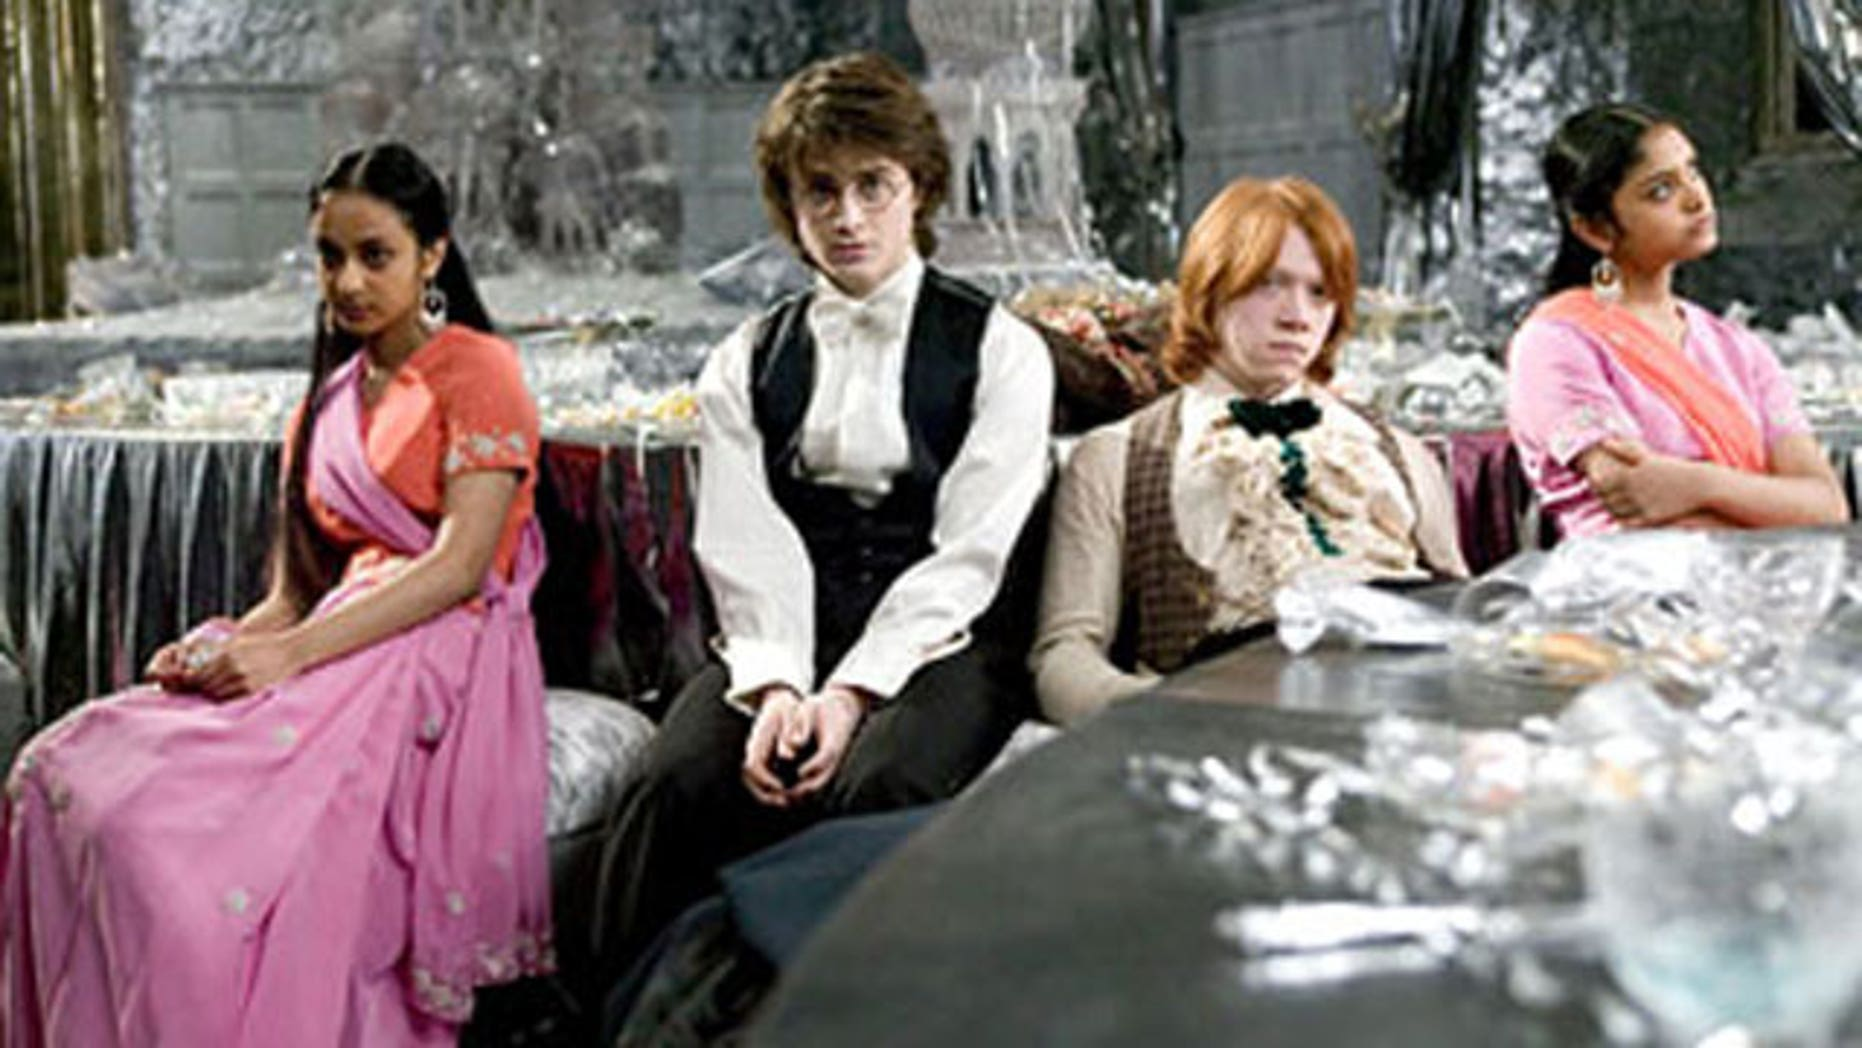 """Afshan Azad (far right) in a scene from the """"Harry Potter"""" movies. (Warner)"""